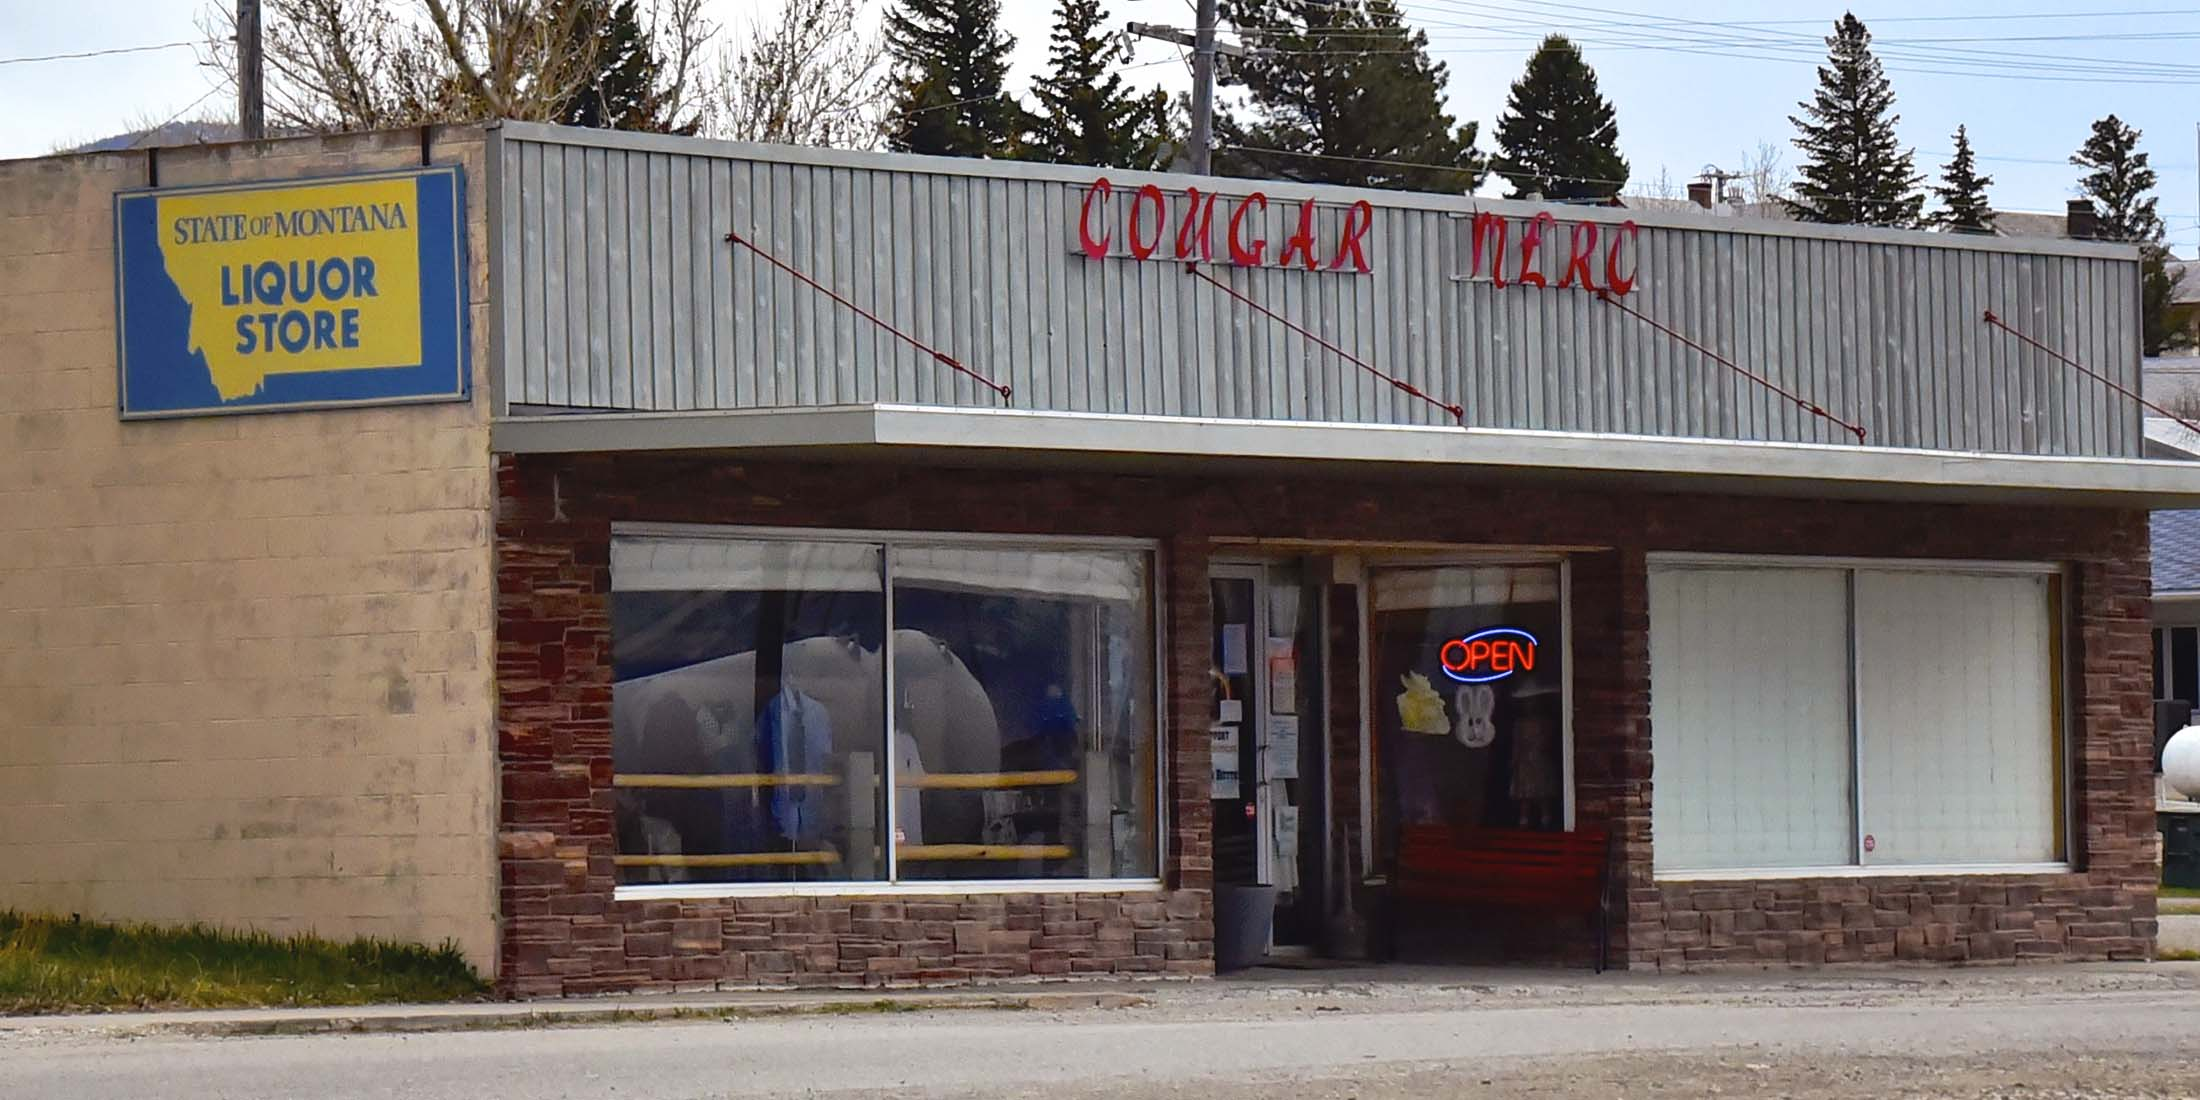 Located near downtown White Sulphur Springs, MT on Highway 89.